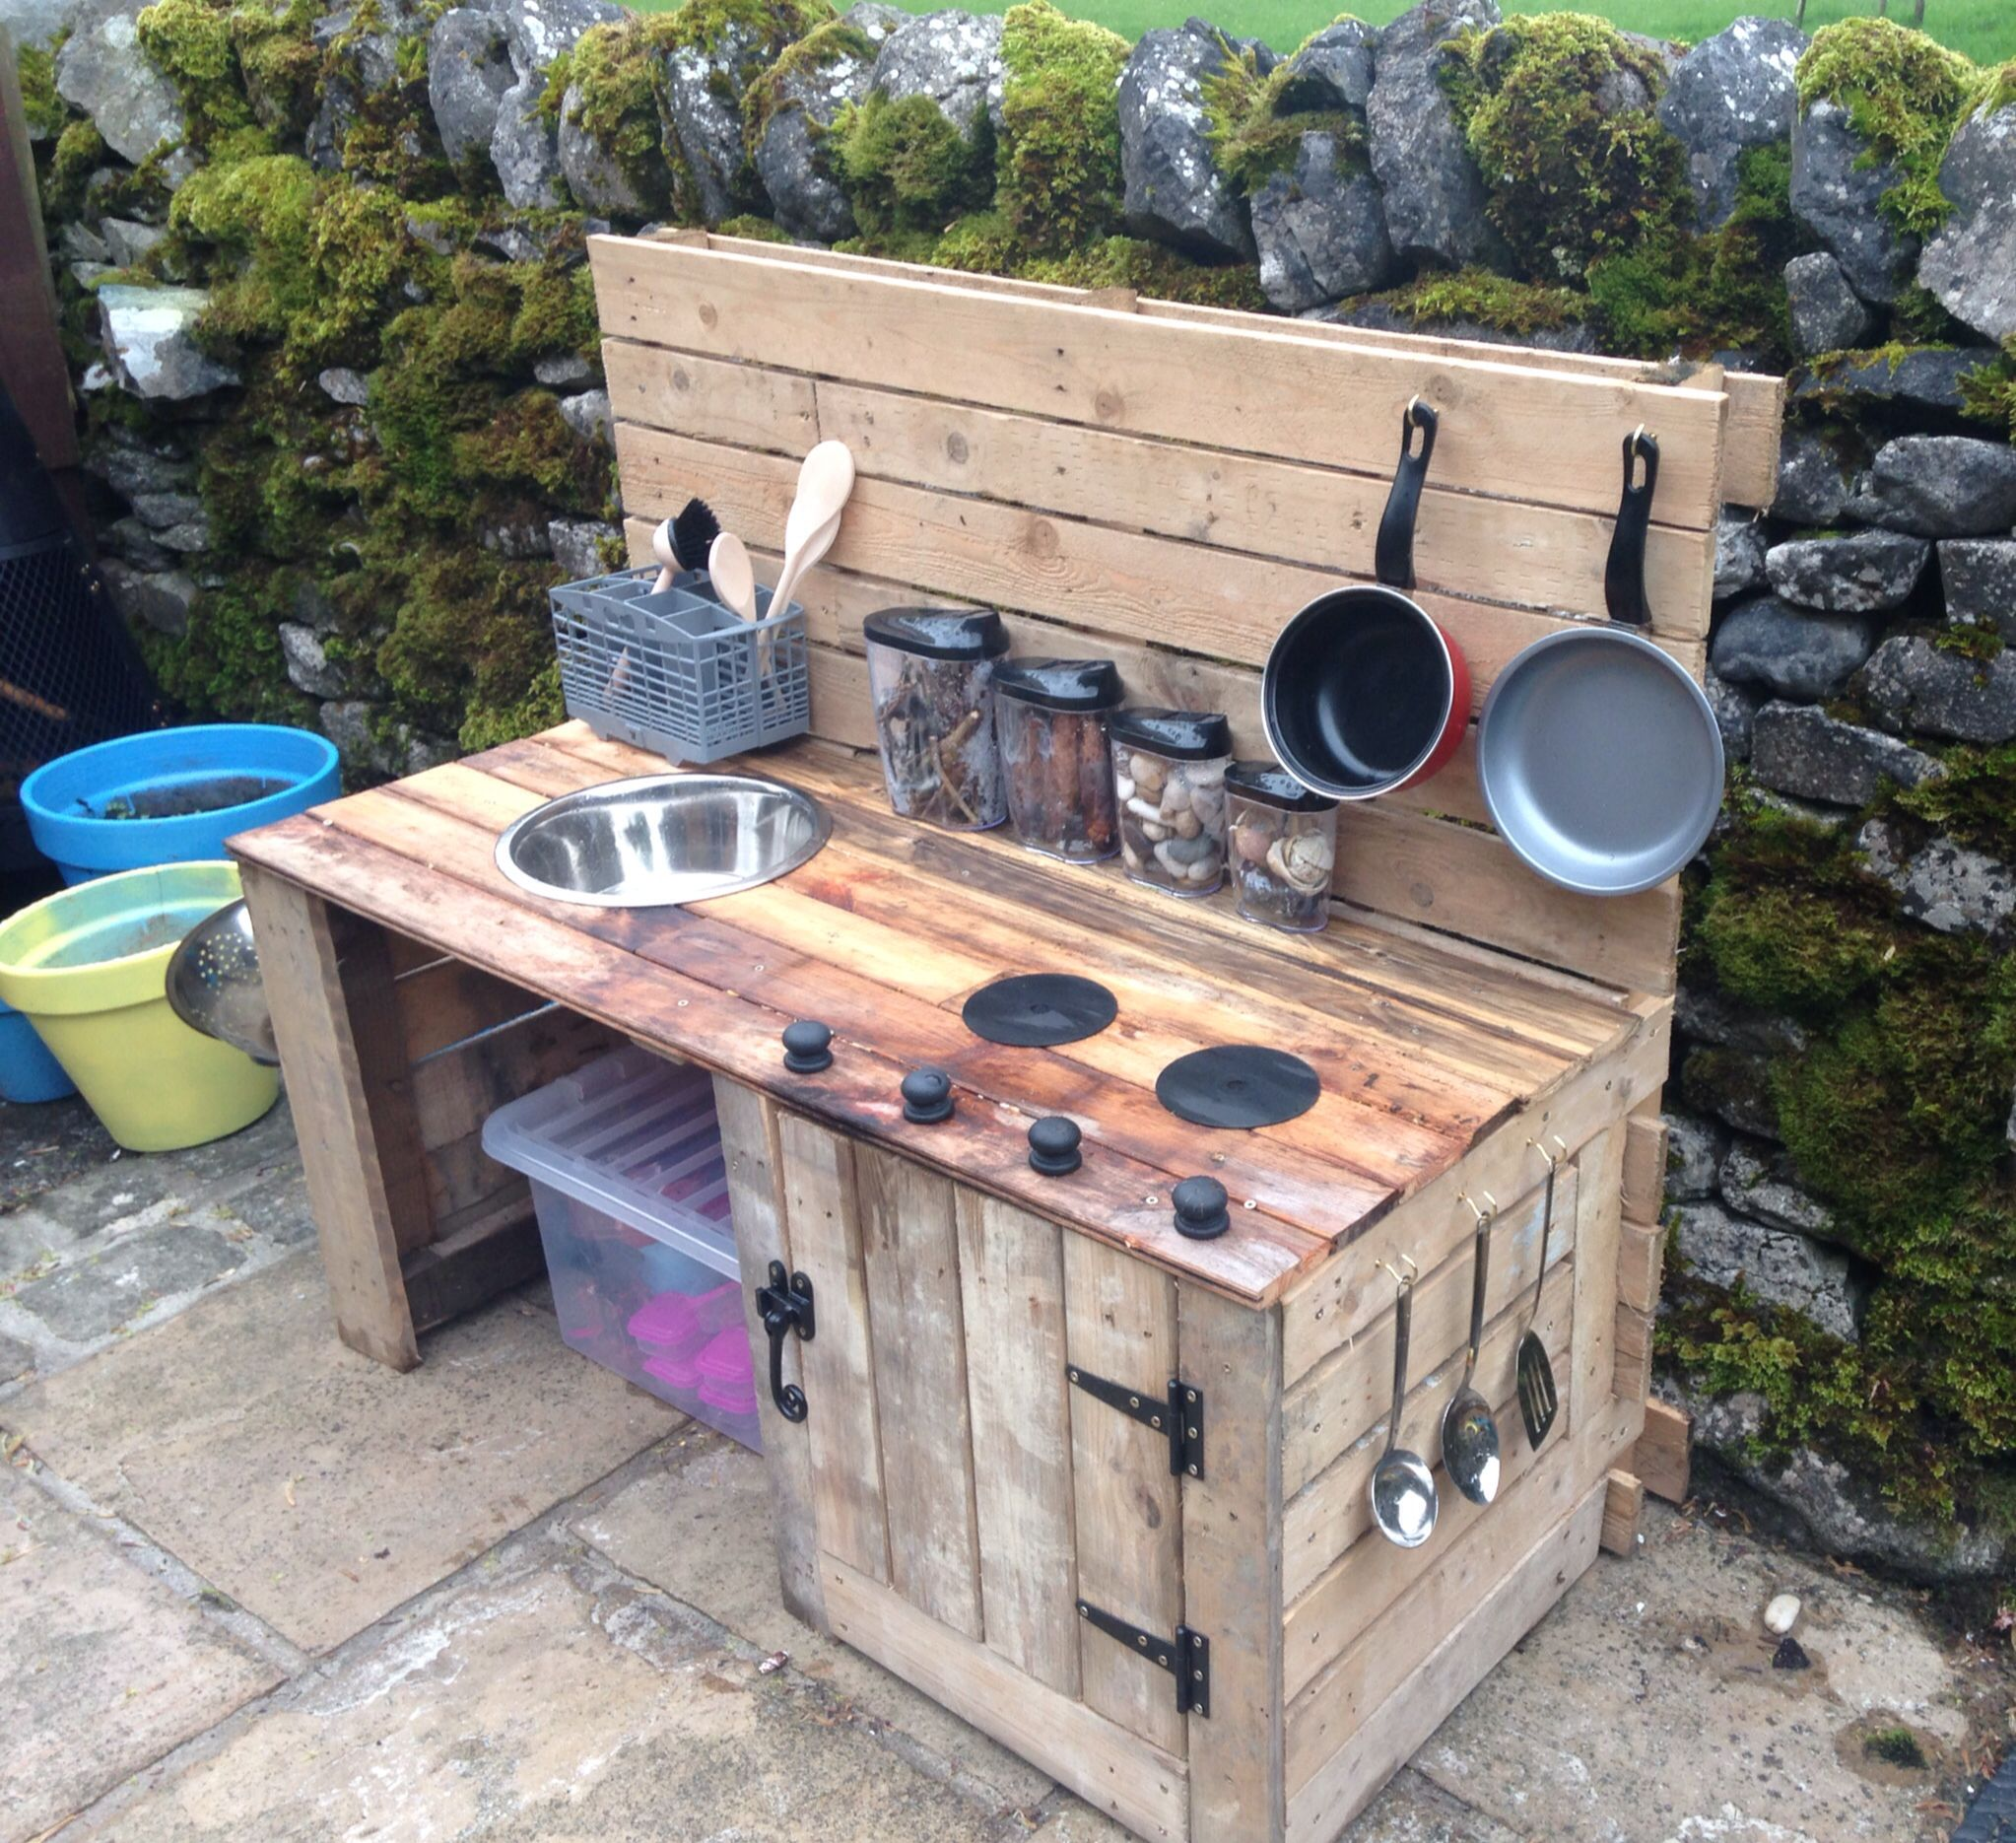 Garten Küche Paletten Diy Mud Outdoor Kitchen Made From Recycled Pallets